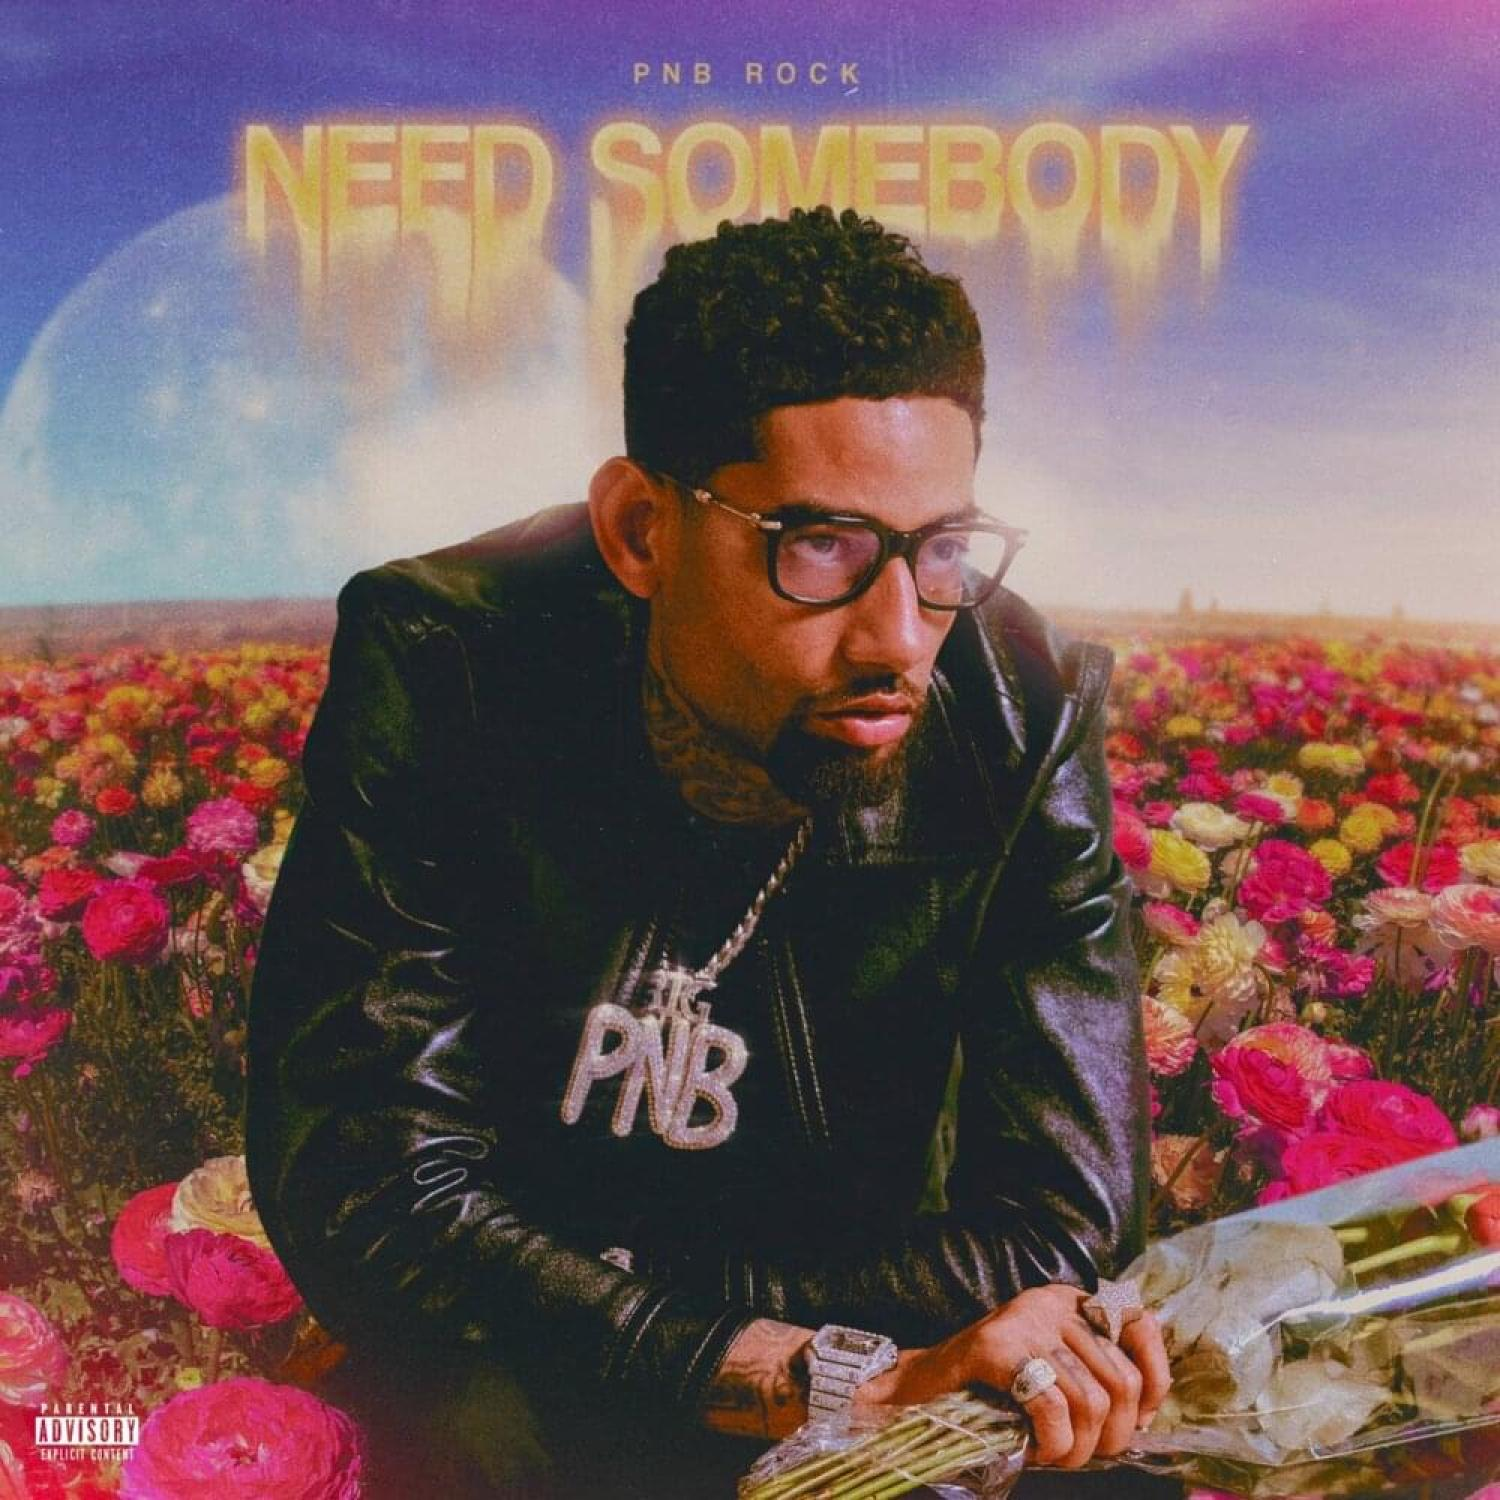 DOWNLOAD MP3: PnB Rock – Need Somebody AUDIO 320kbps